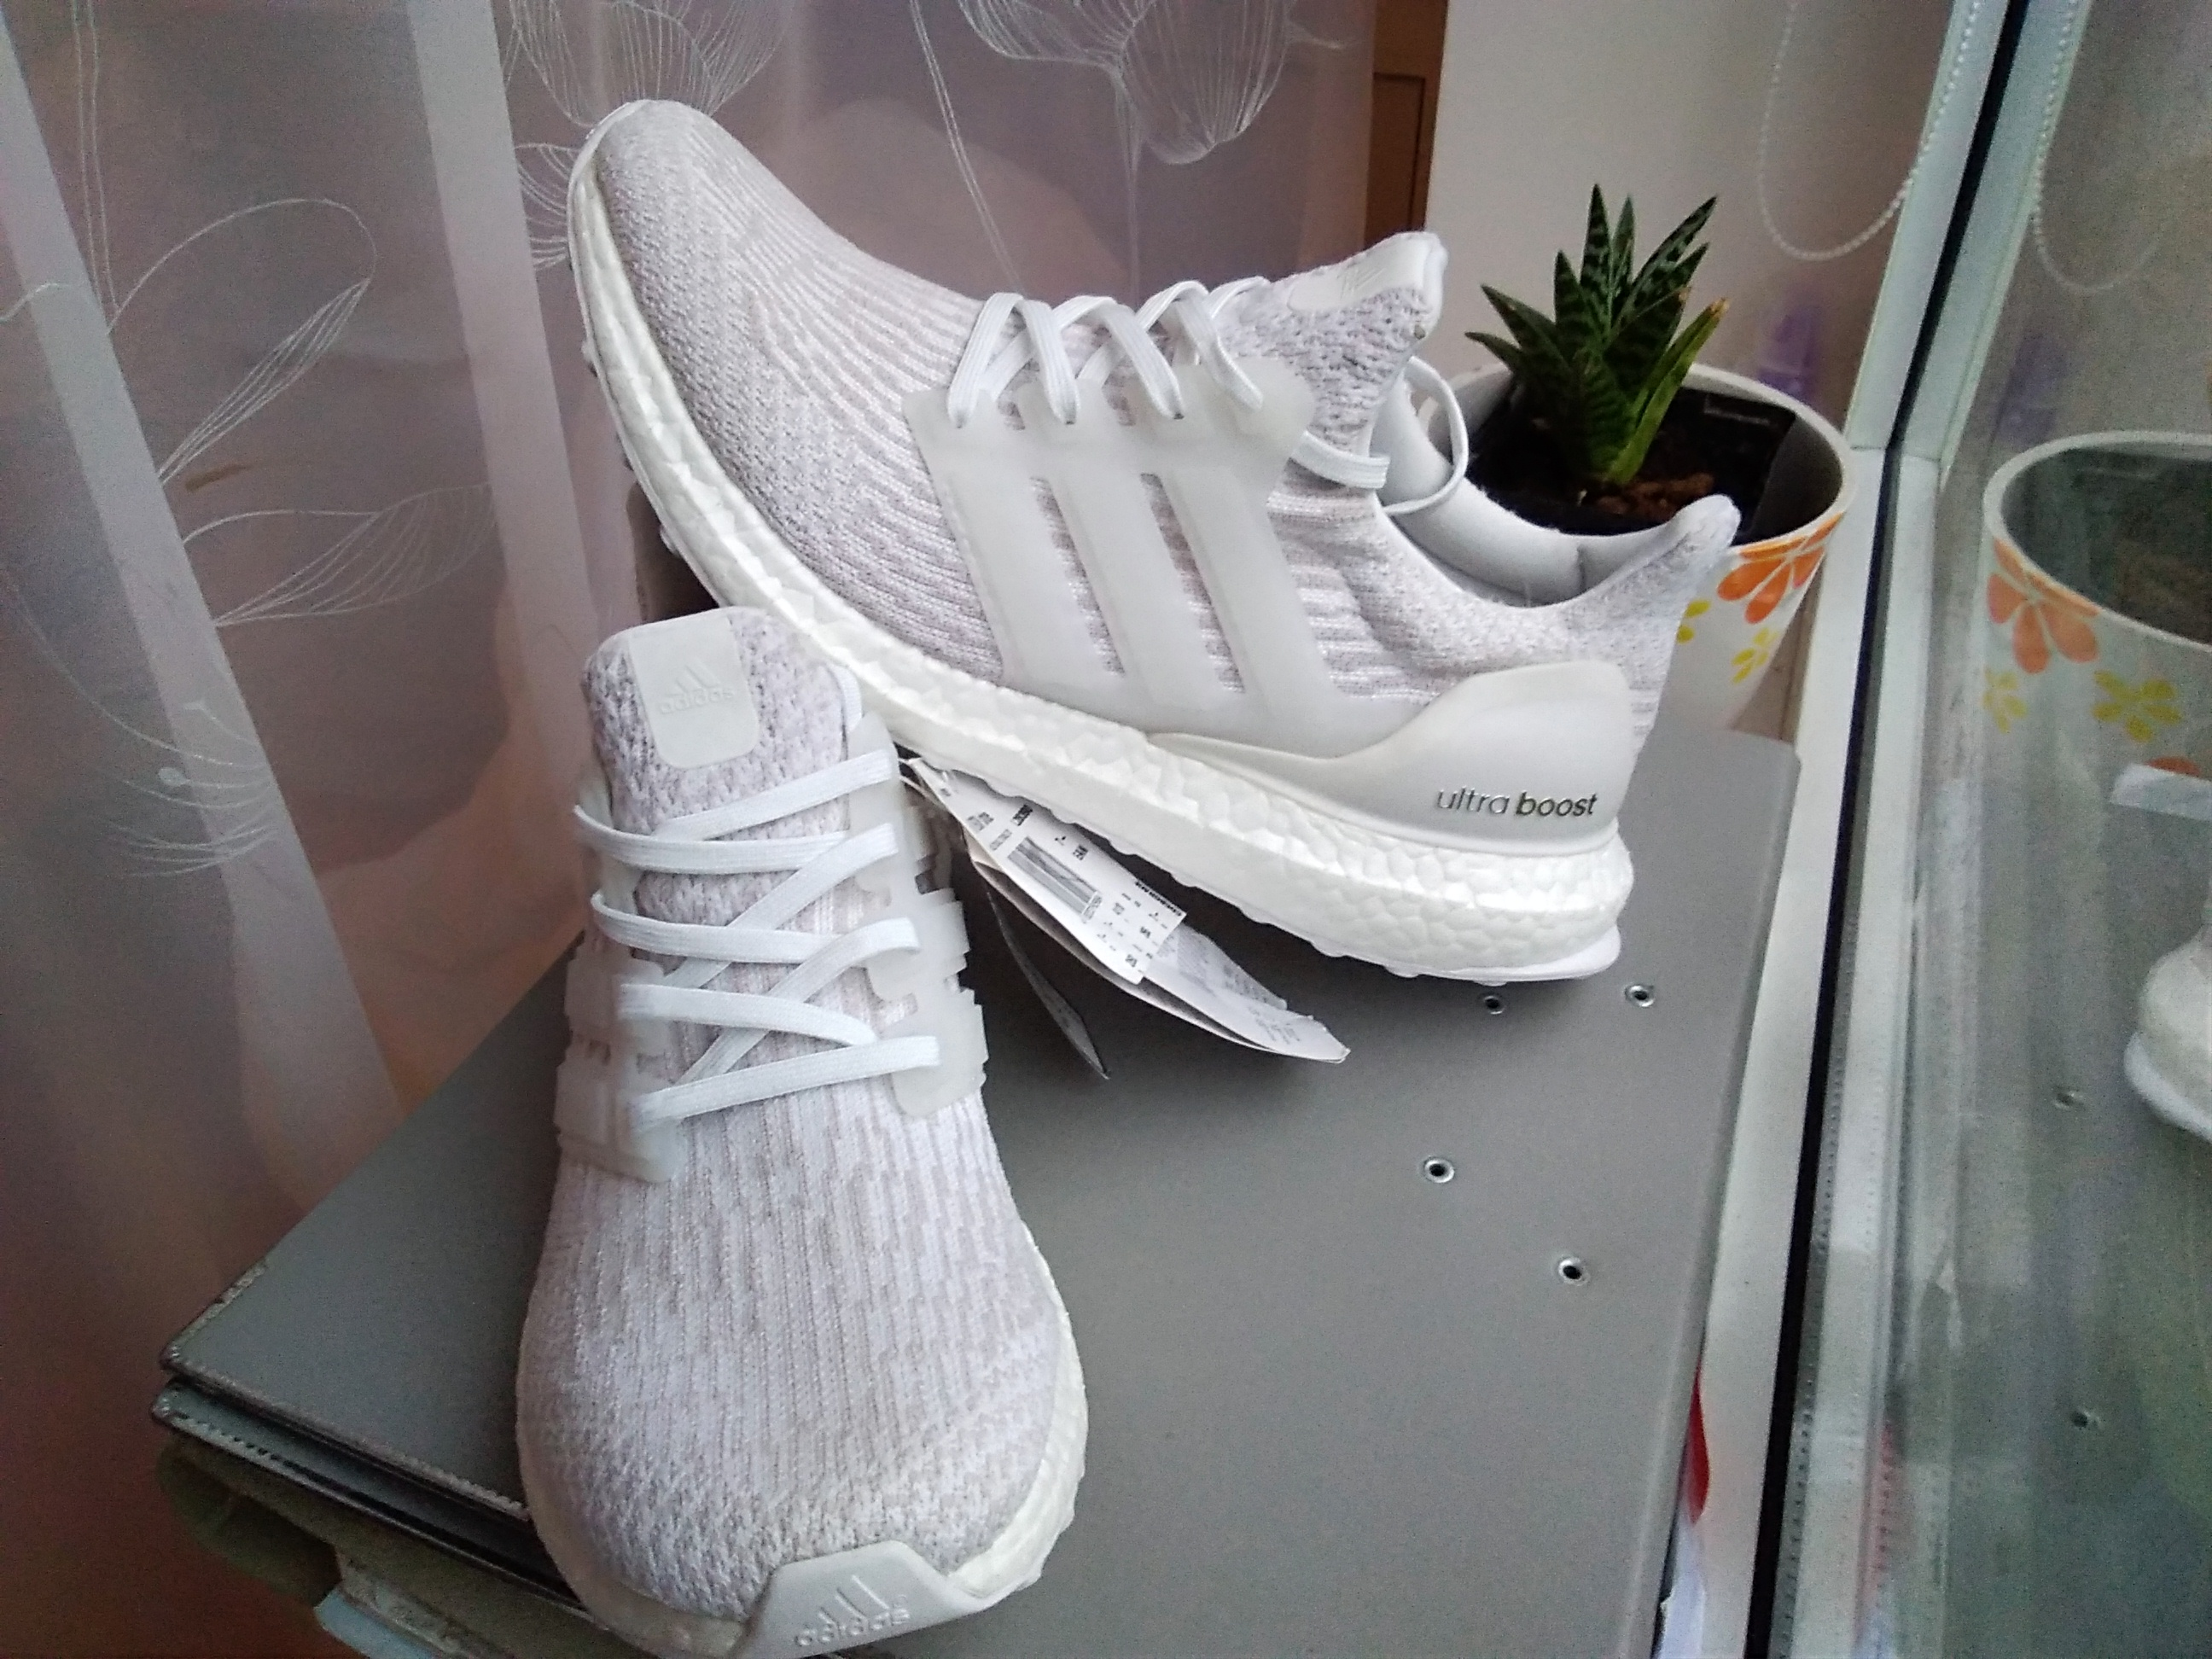 ee7003a8922ce Adidas Adidas Ultra boost 3.0 women womens girl white pearl grey under  retail Size 8.5 - Low-Top Sneakers for Sale - Grailed